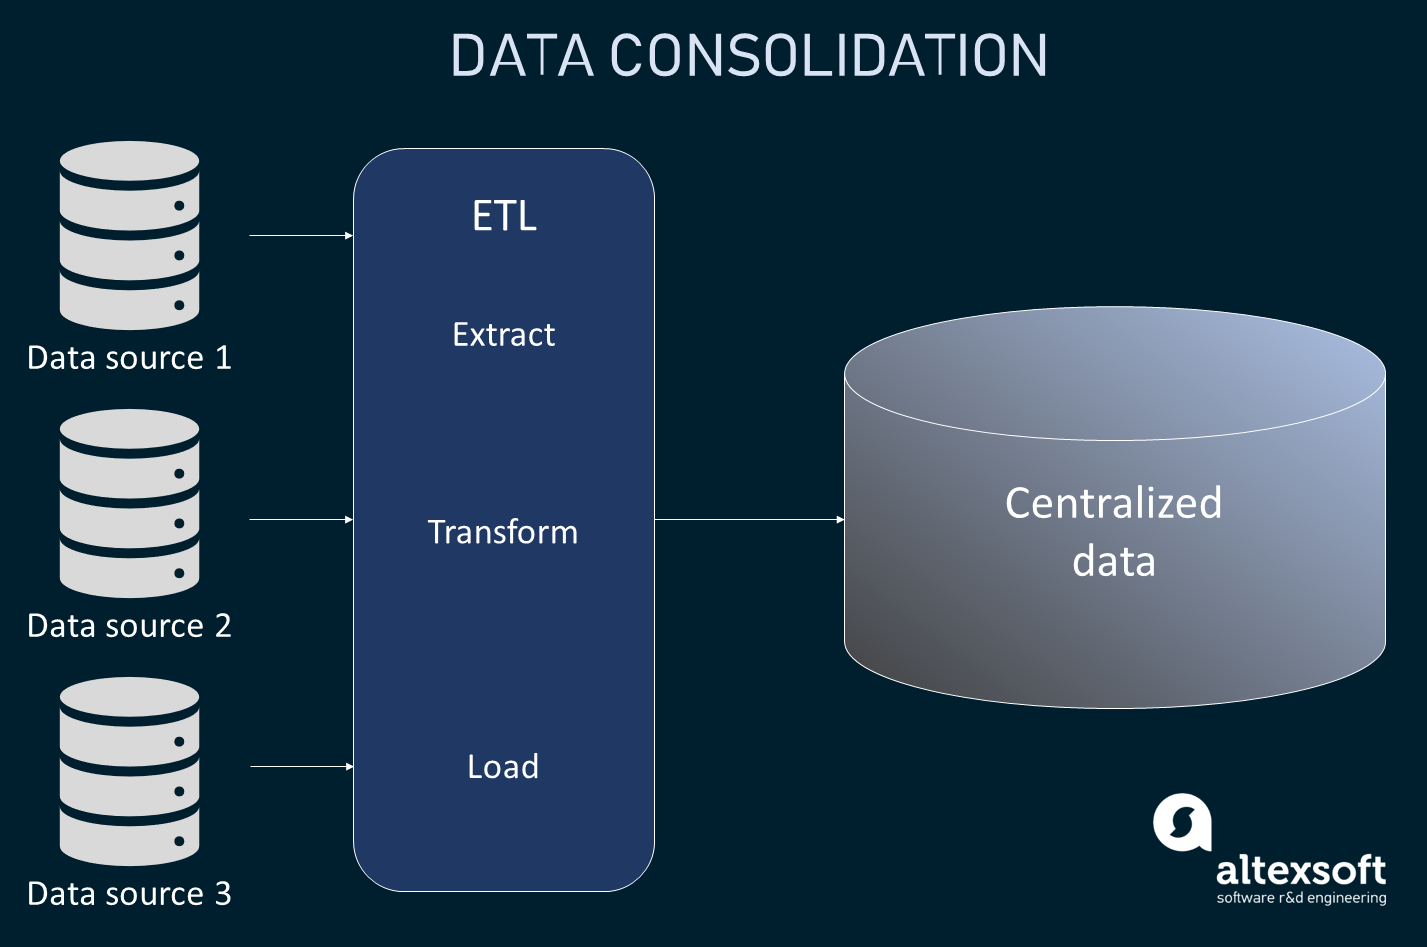 How data consolidation works